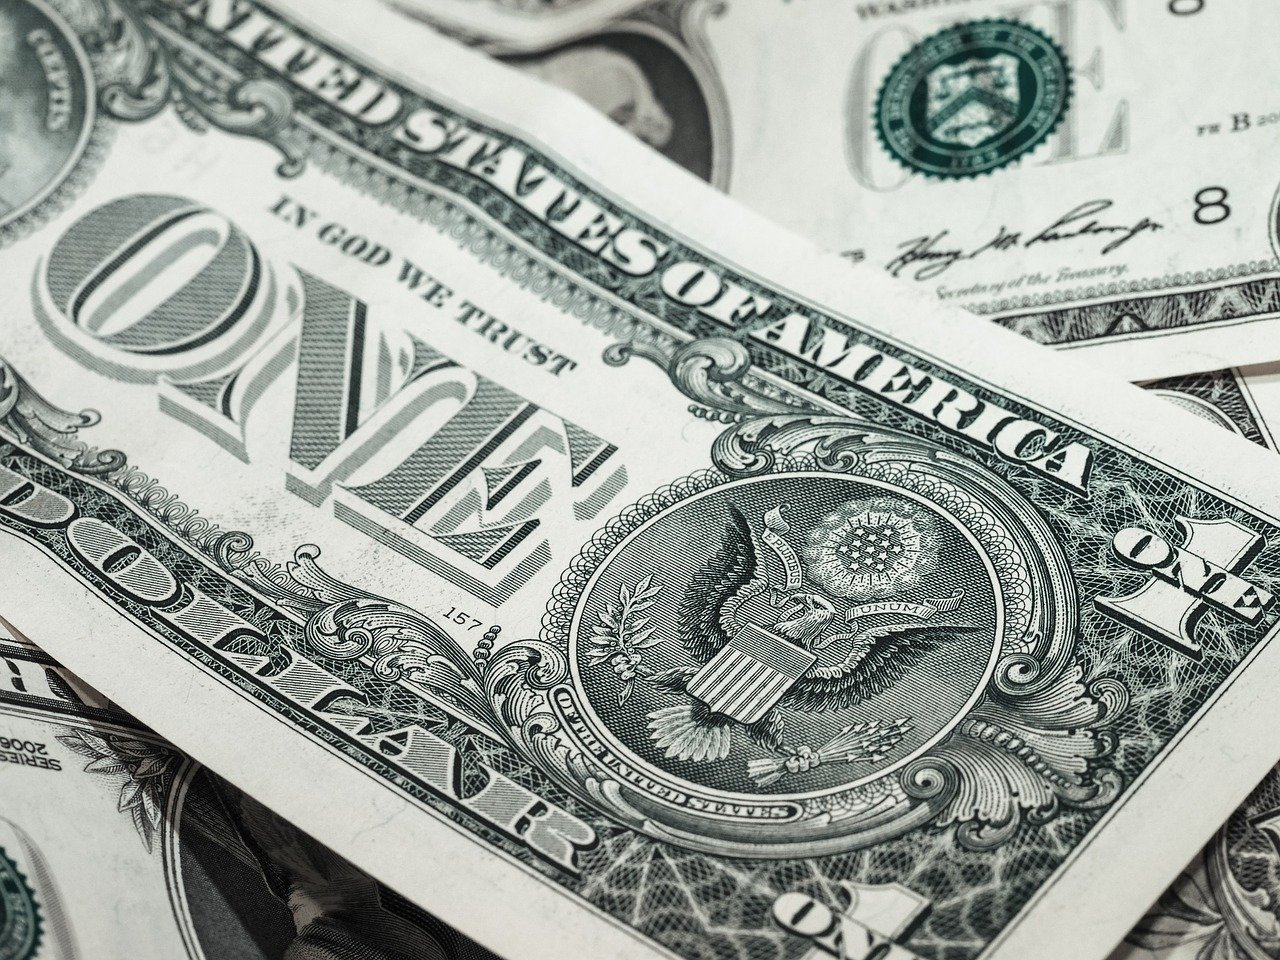 Photo of dollar bills in article about money